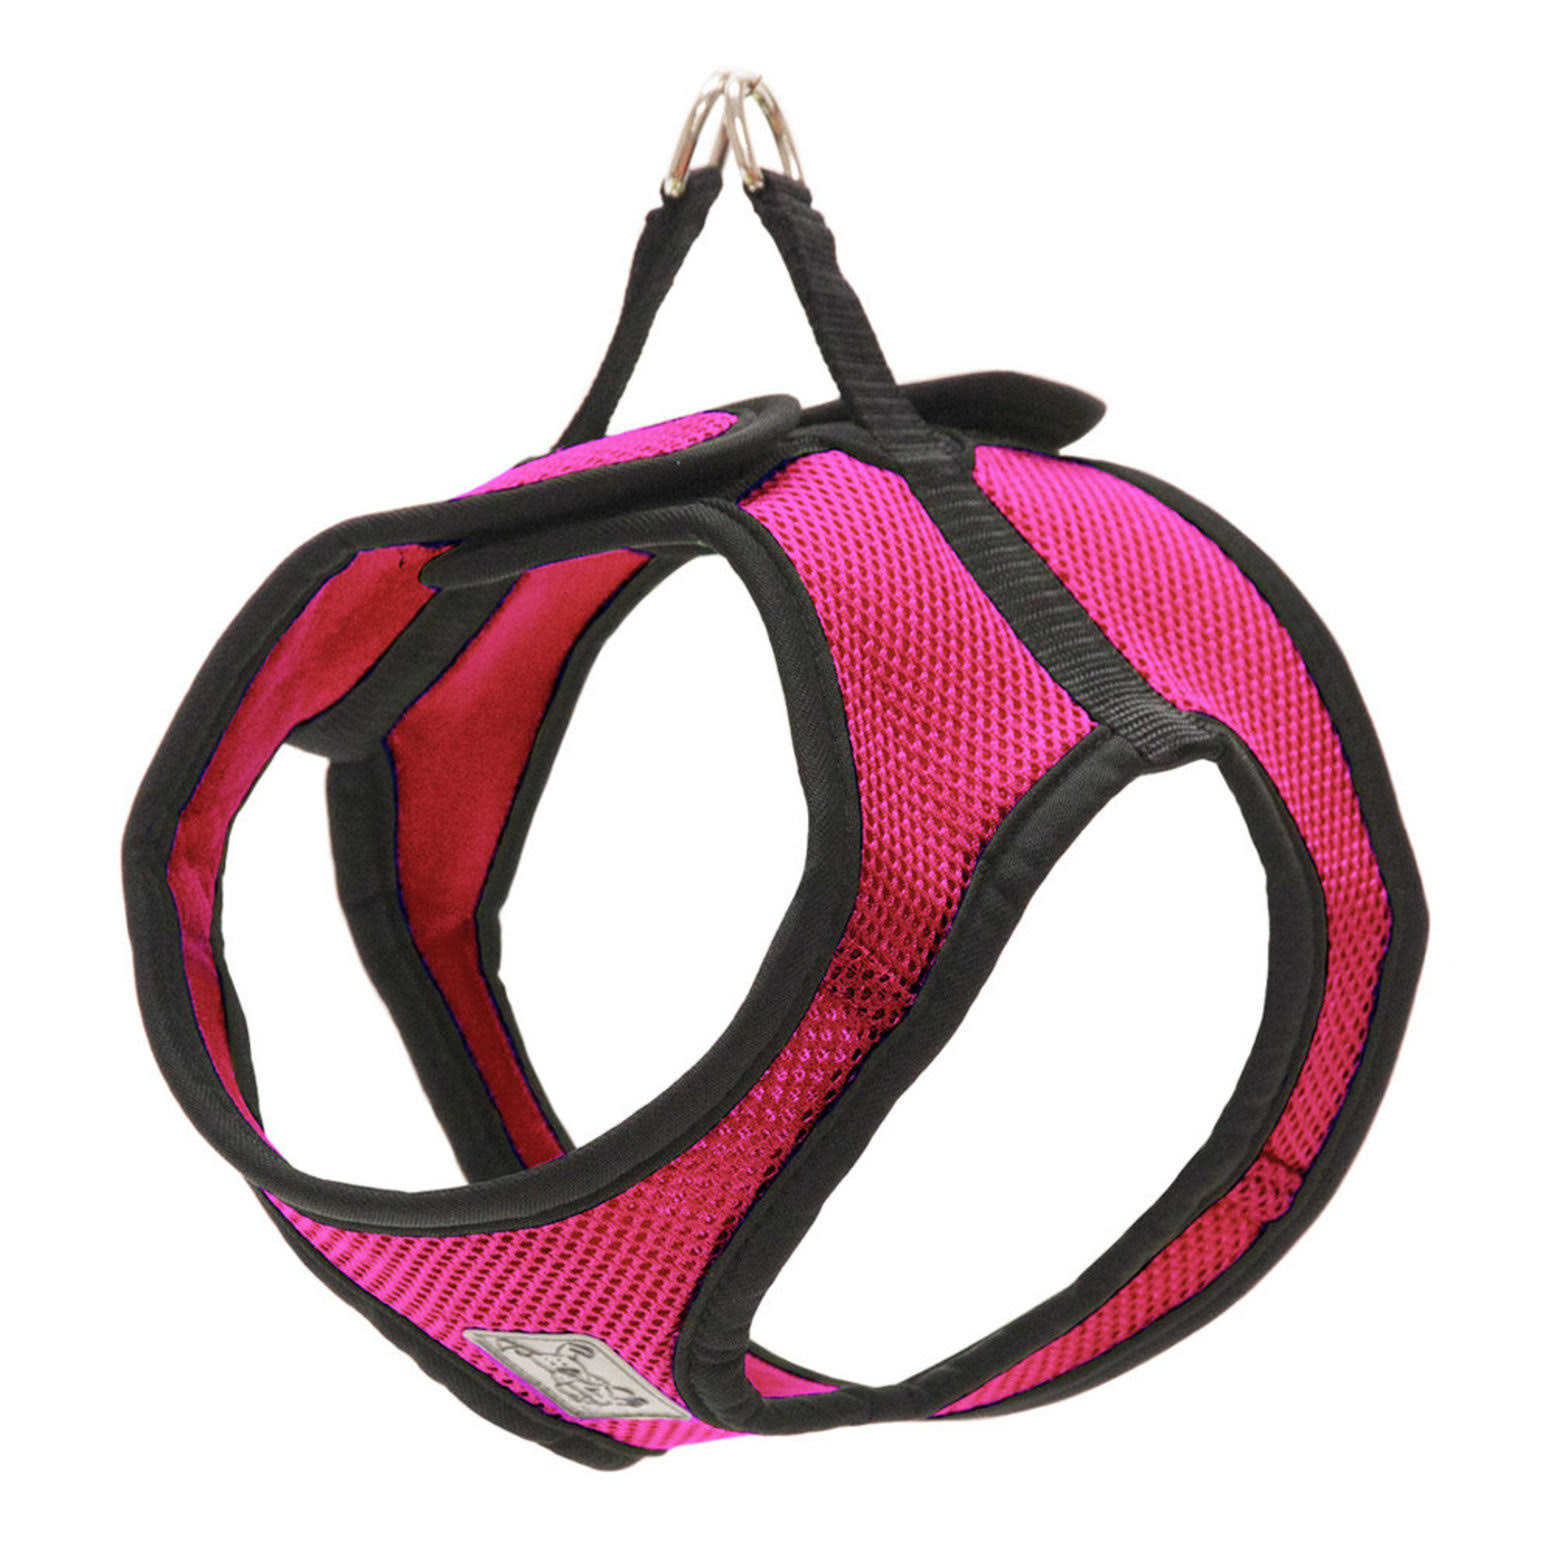 RC Pet Products Step in Cirque Soft Walking Dog Harness - Raspberry, Large